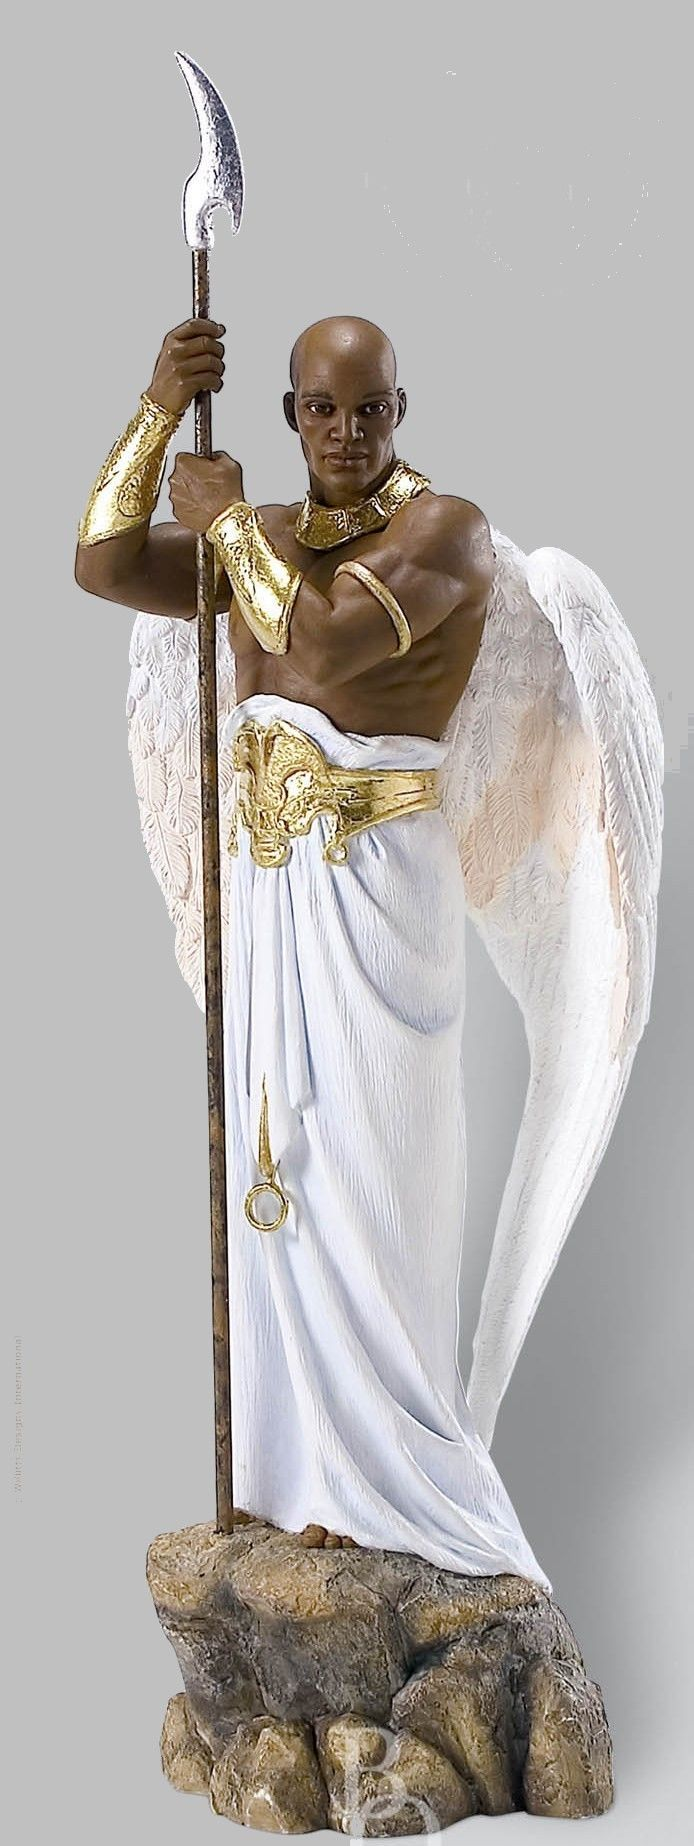 angels images | Guardian Angels are Real Angels not ...